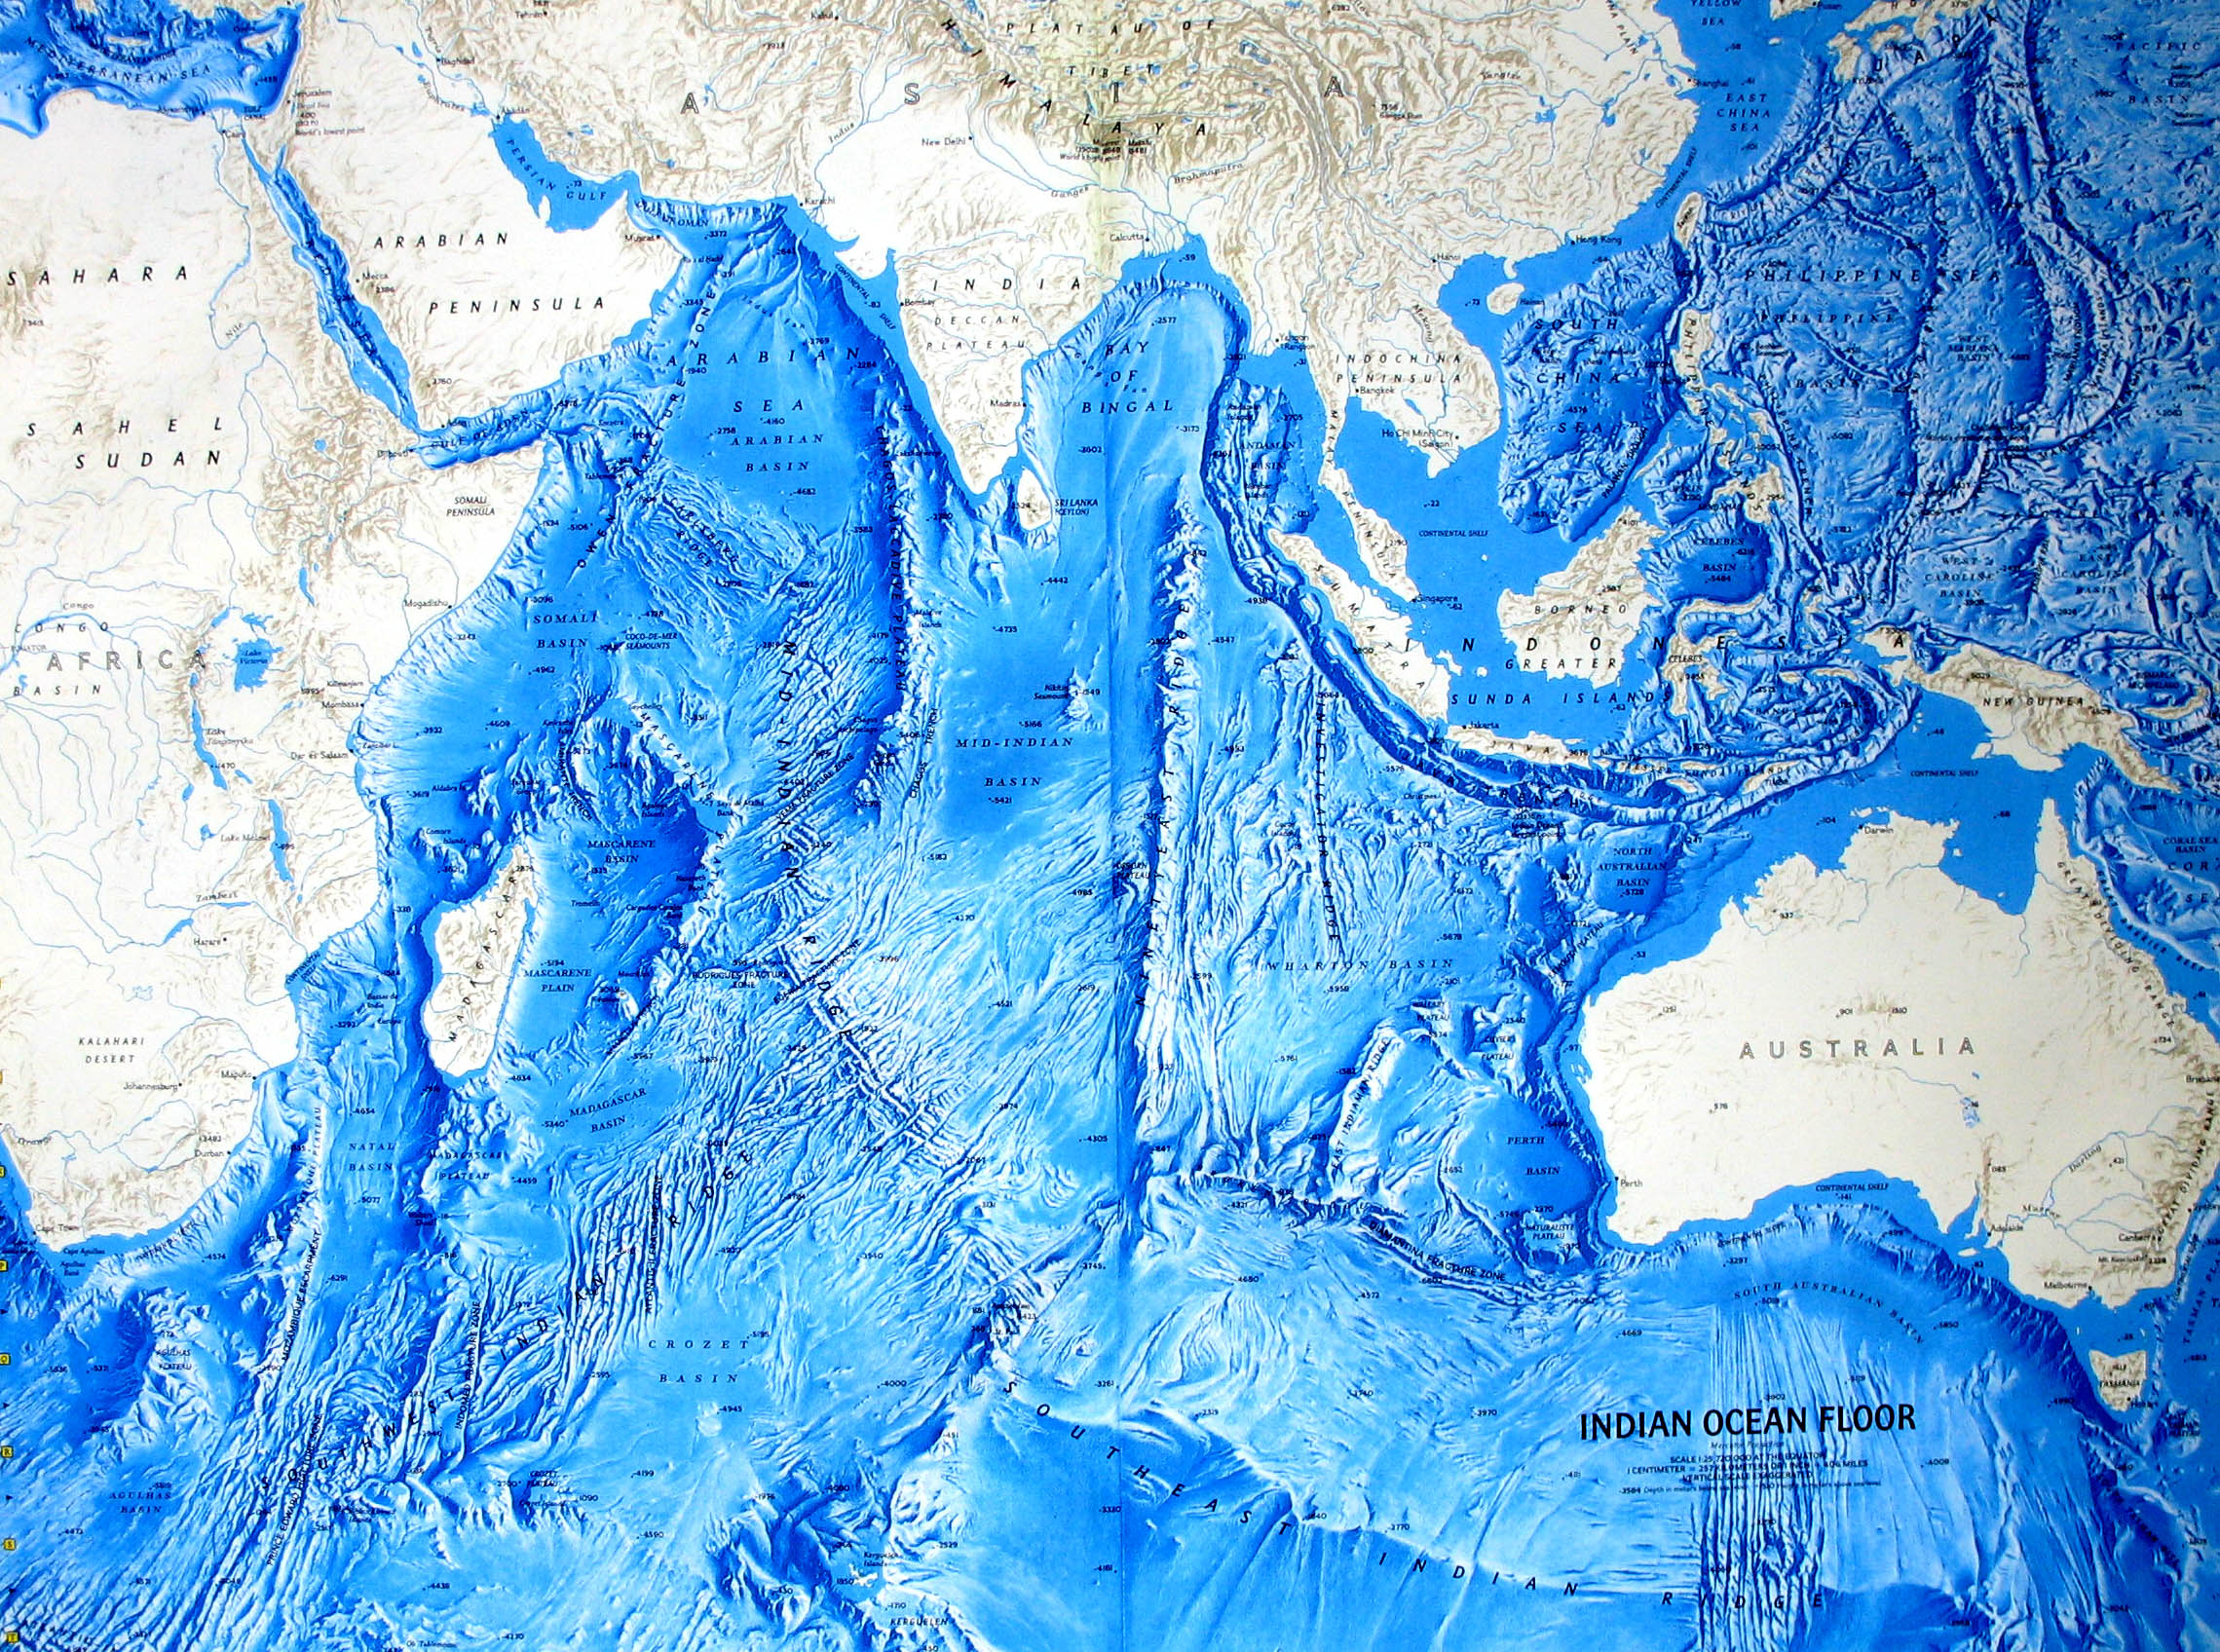 Ocean floor relief maps detailed maps of sea and ocean depths detailed maps of ocean floor relief gumiabroncs Choice Image